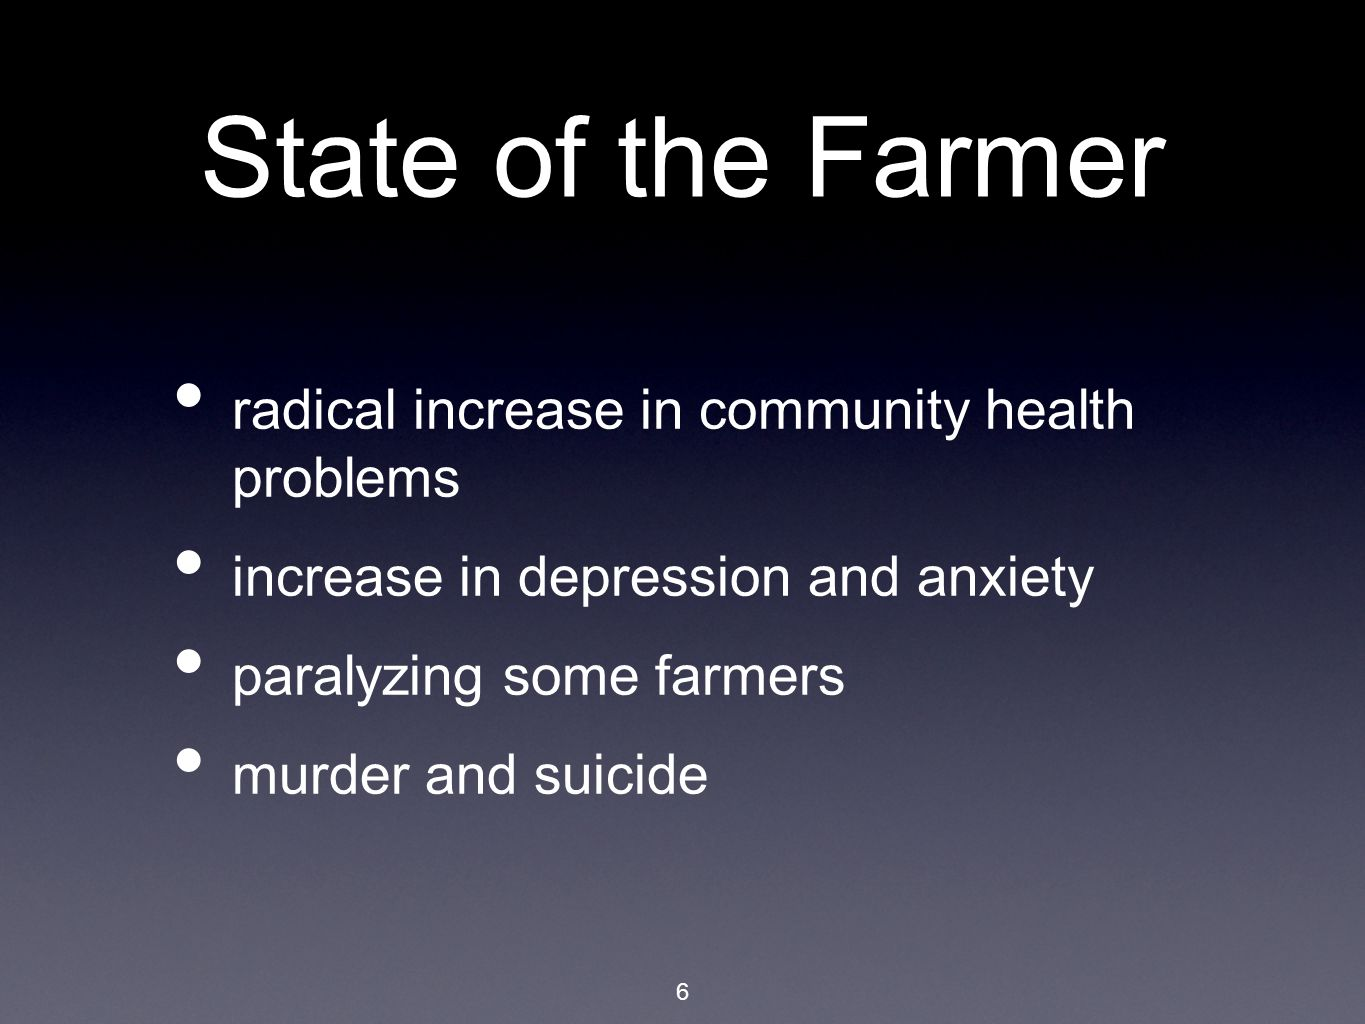 6 State of the Farmer radical increase in community health problems increase in depression and anxiety paralyzing some farmers murder and suicide